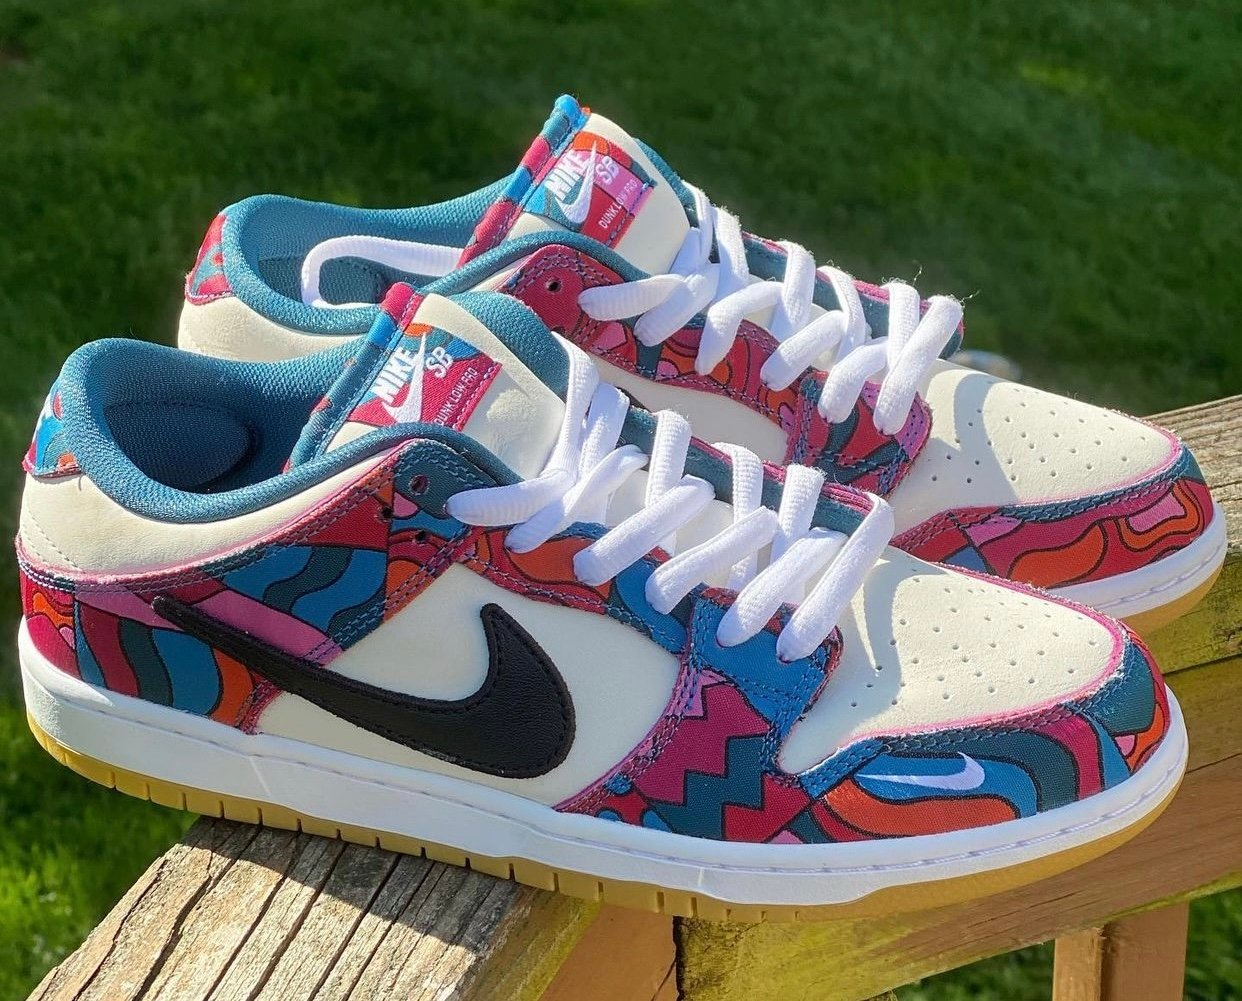 Parra x Nike SB Dunk Low DH7695-102 Release Date